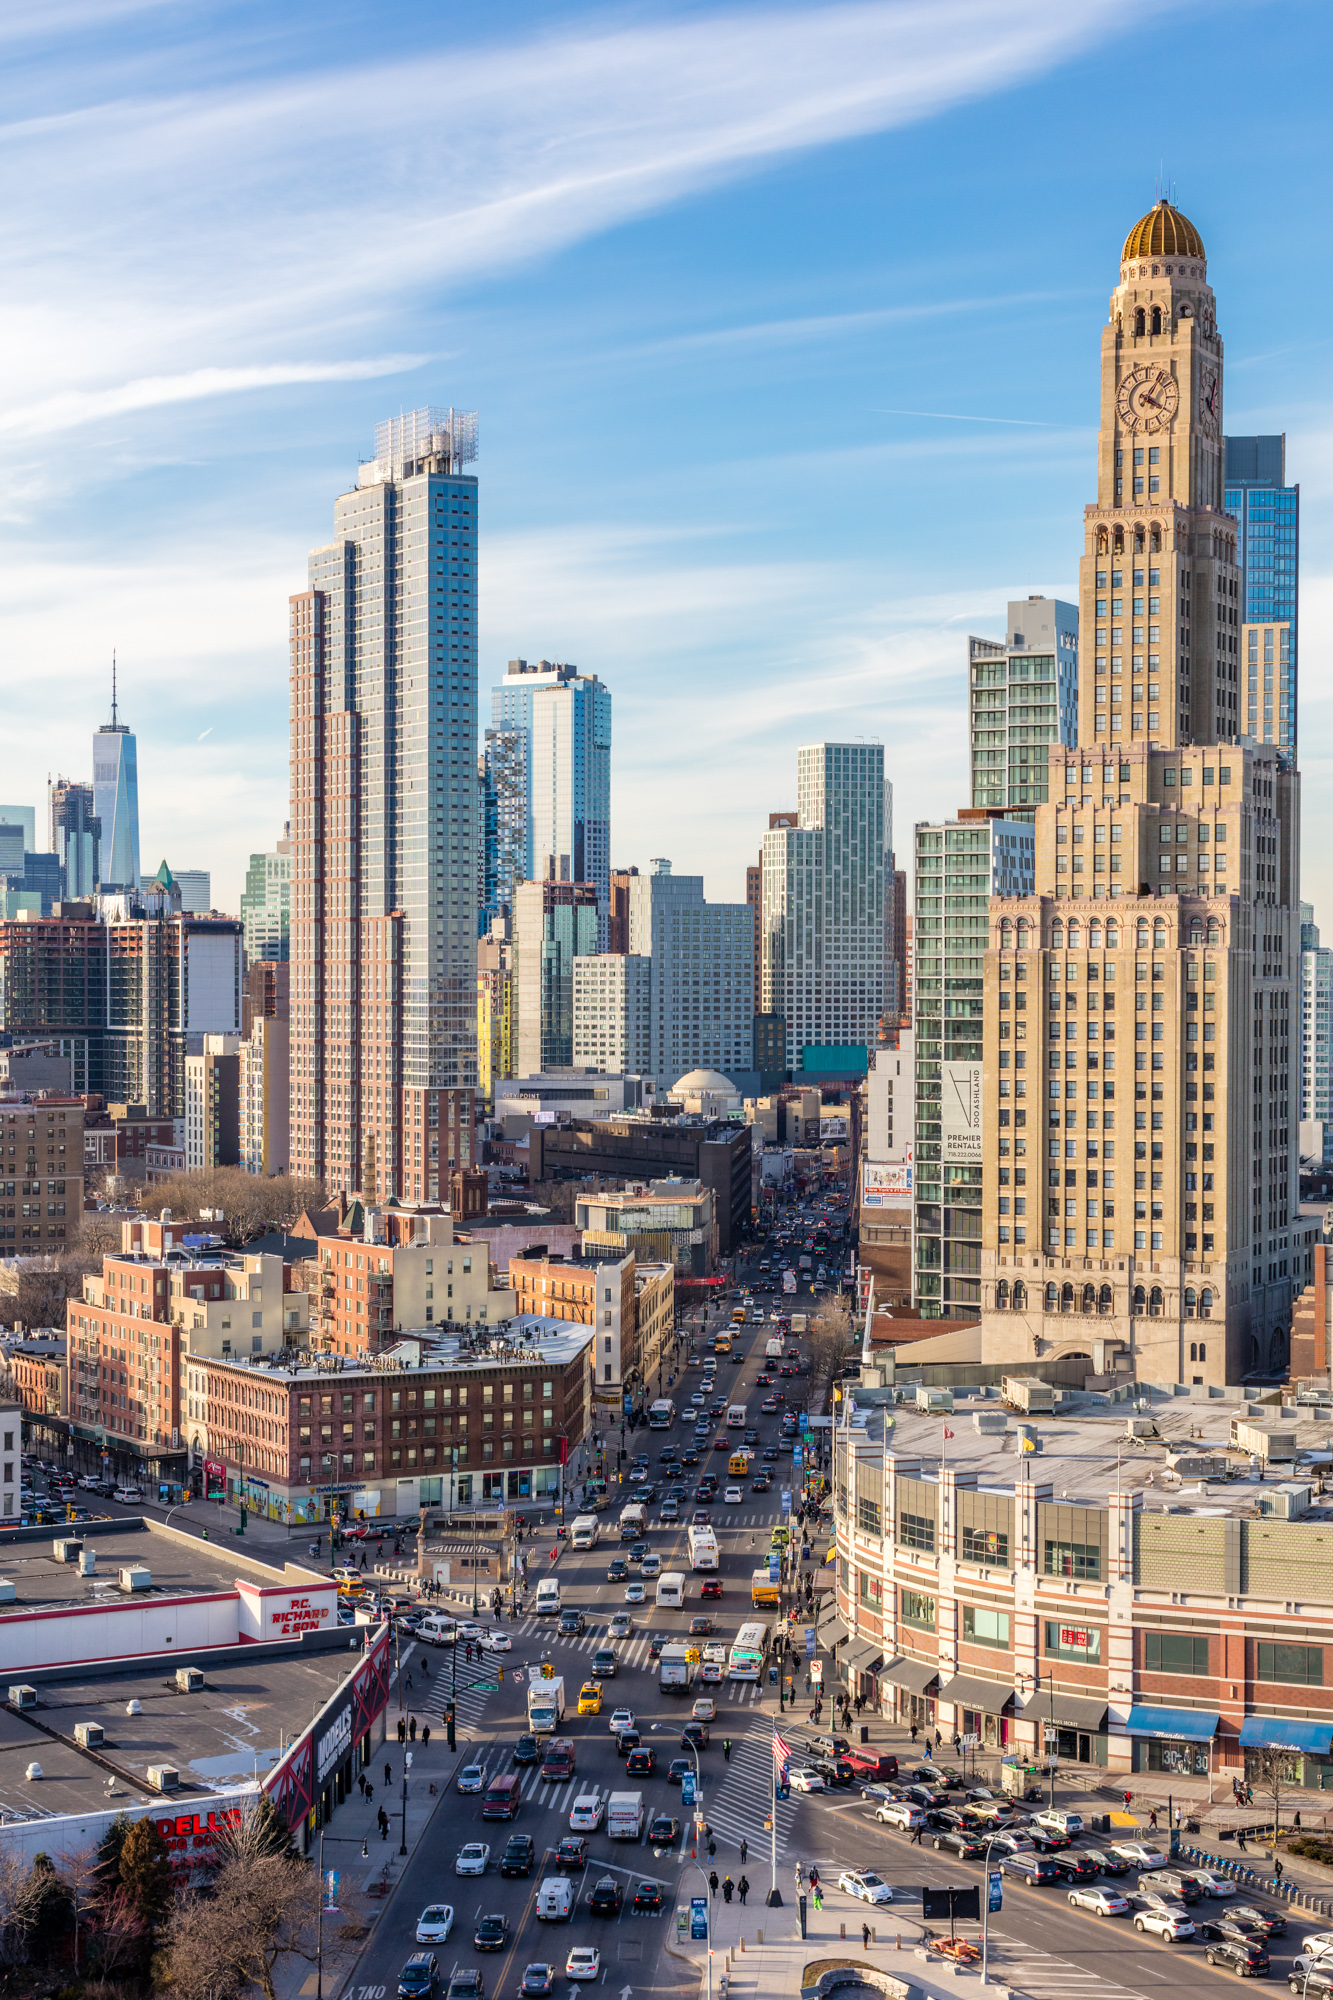 Brooklyn S Tallest Building Hub Tries To Live Up To Its